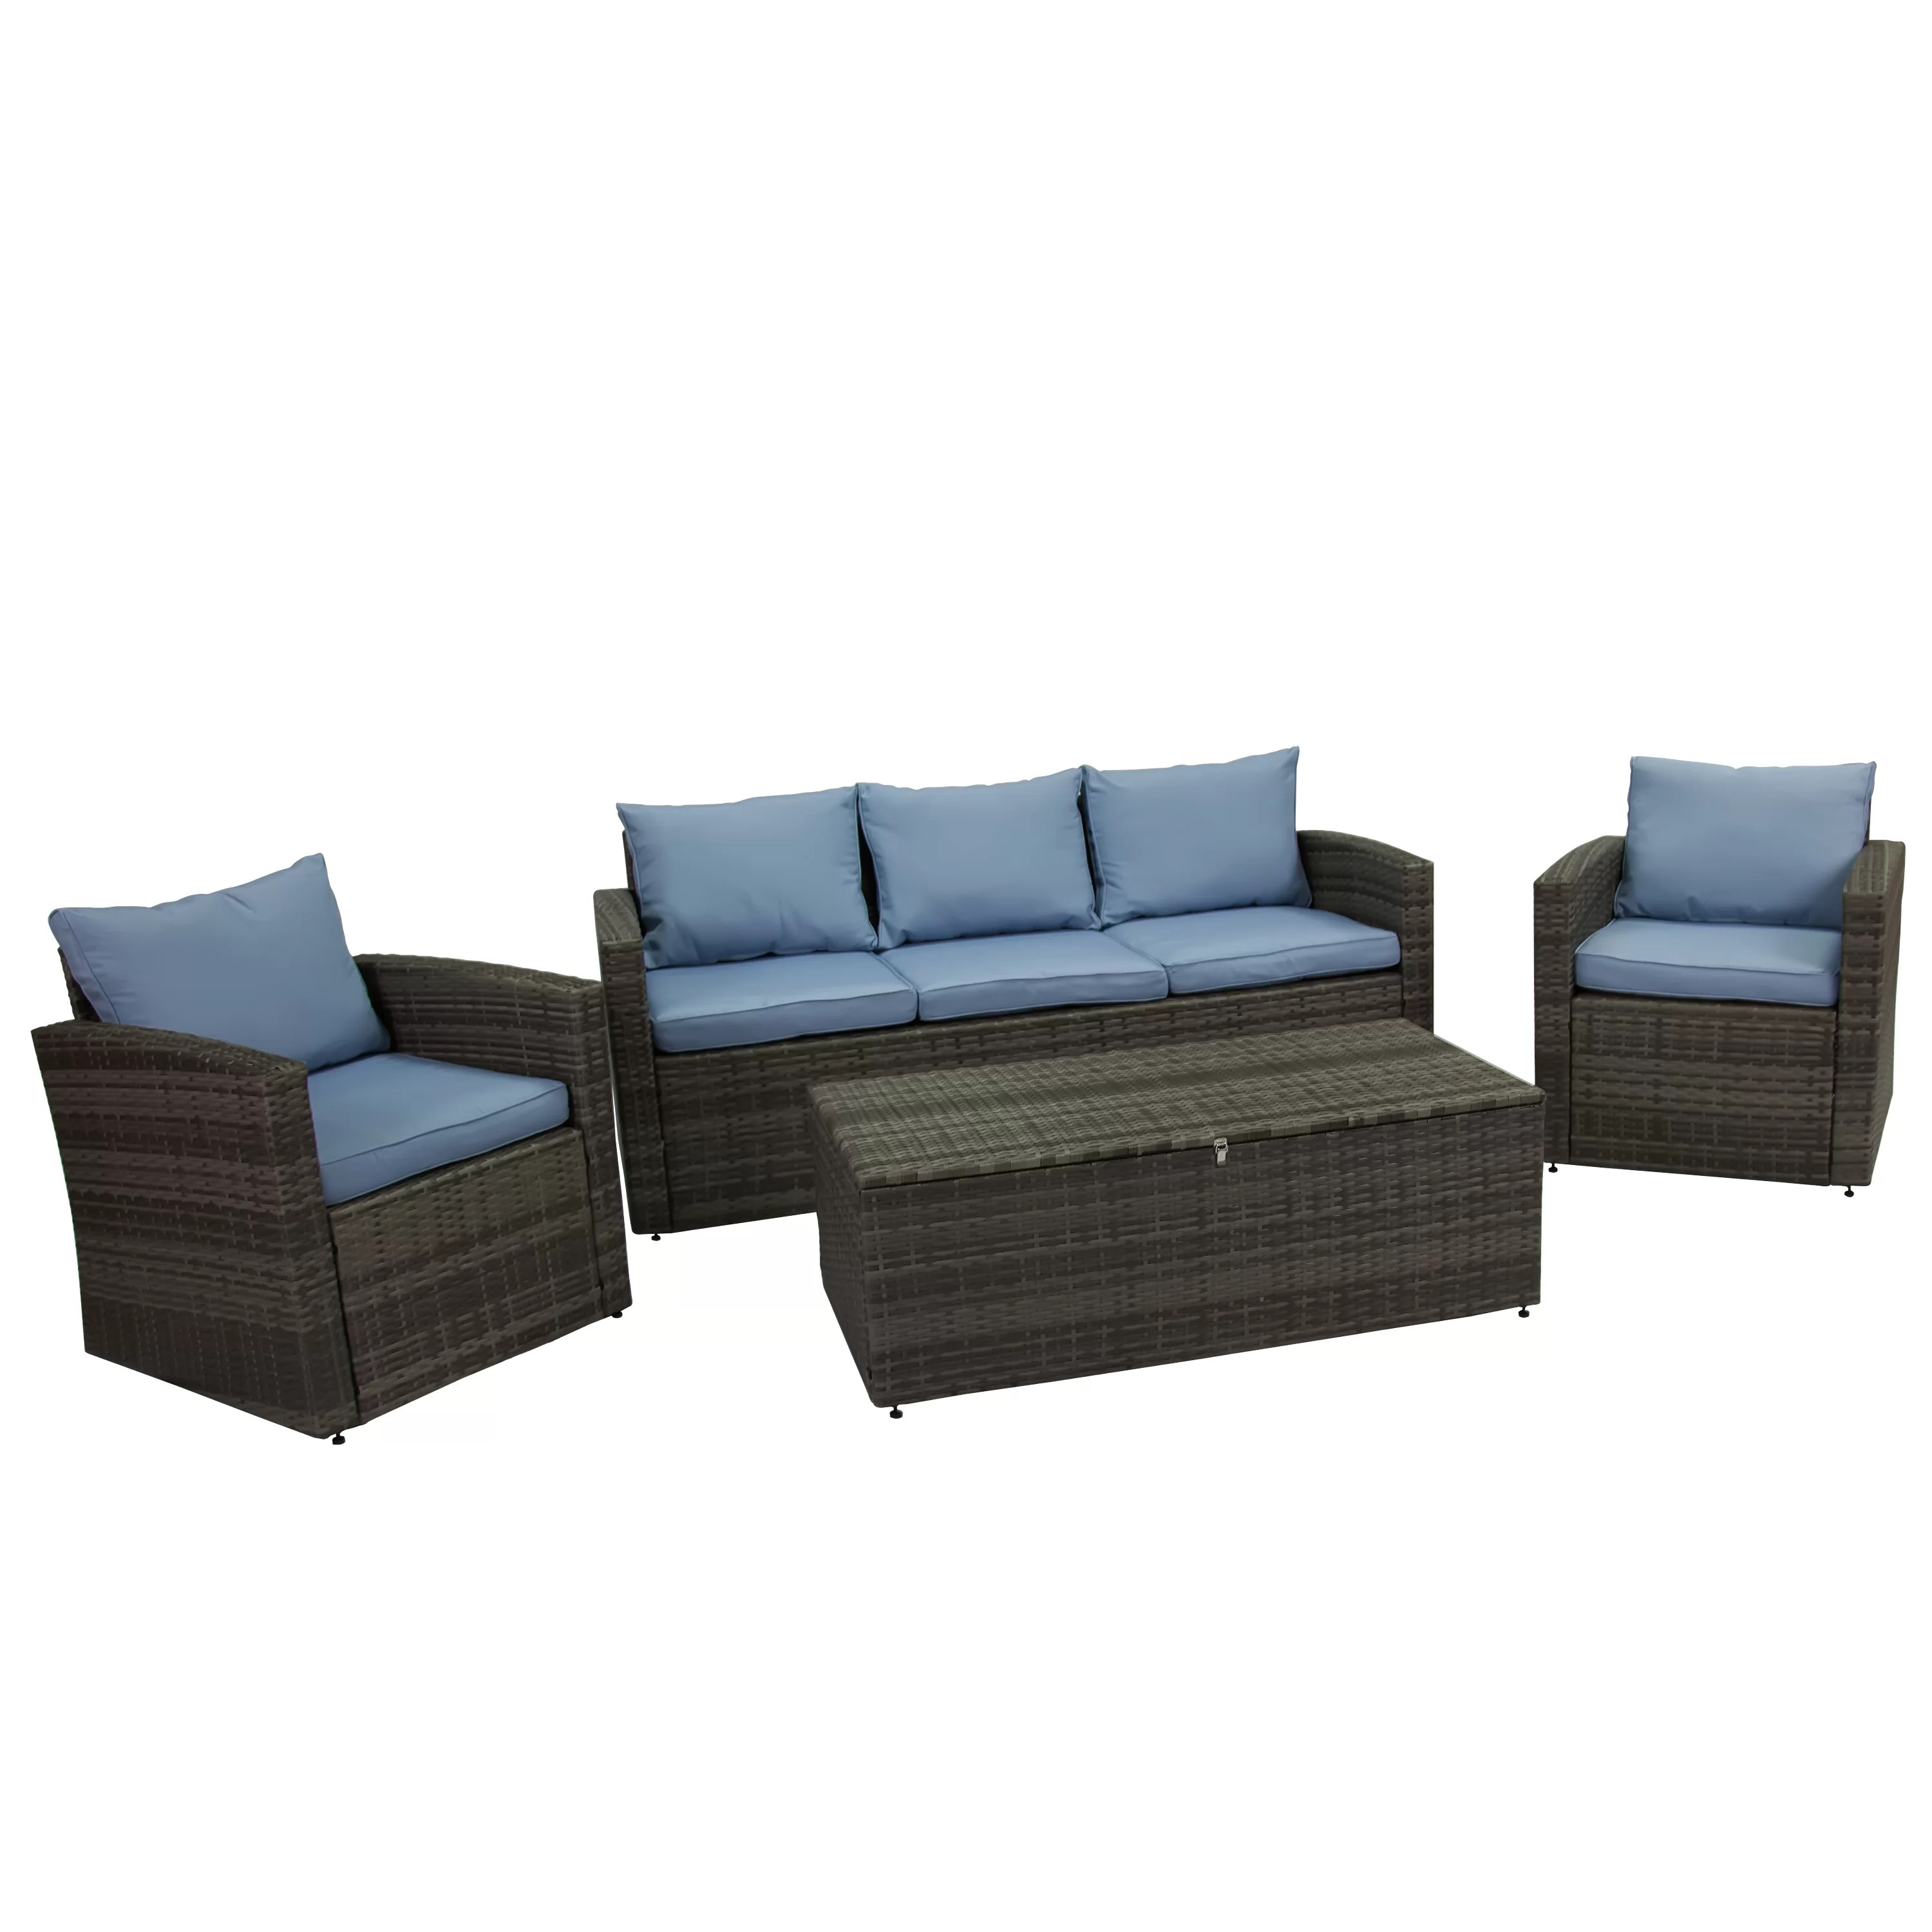 Rattan Sofa Arlington 4 Piece Rattan Sofa Seating Group With Cushions